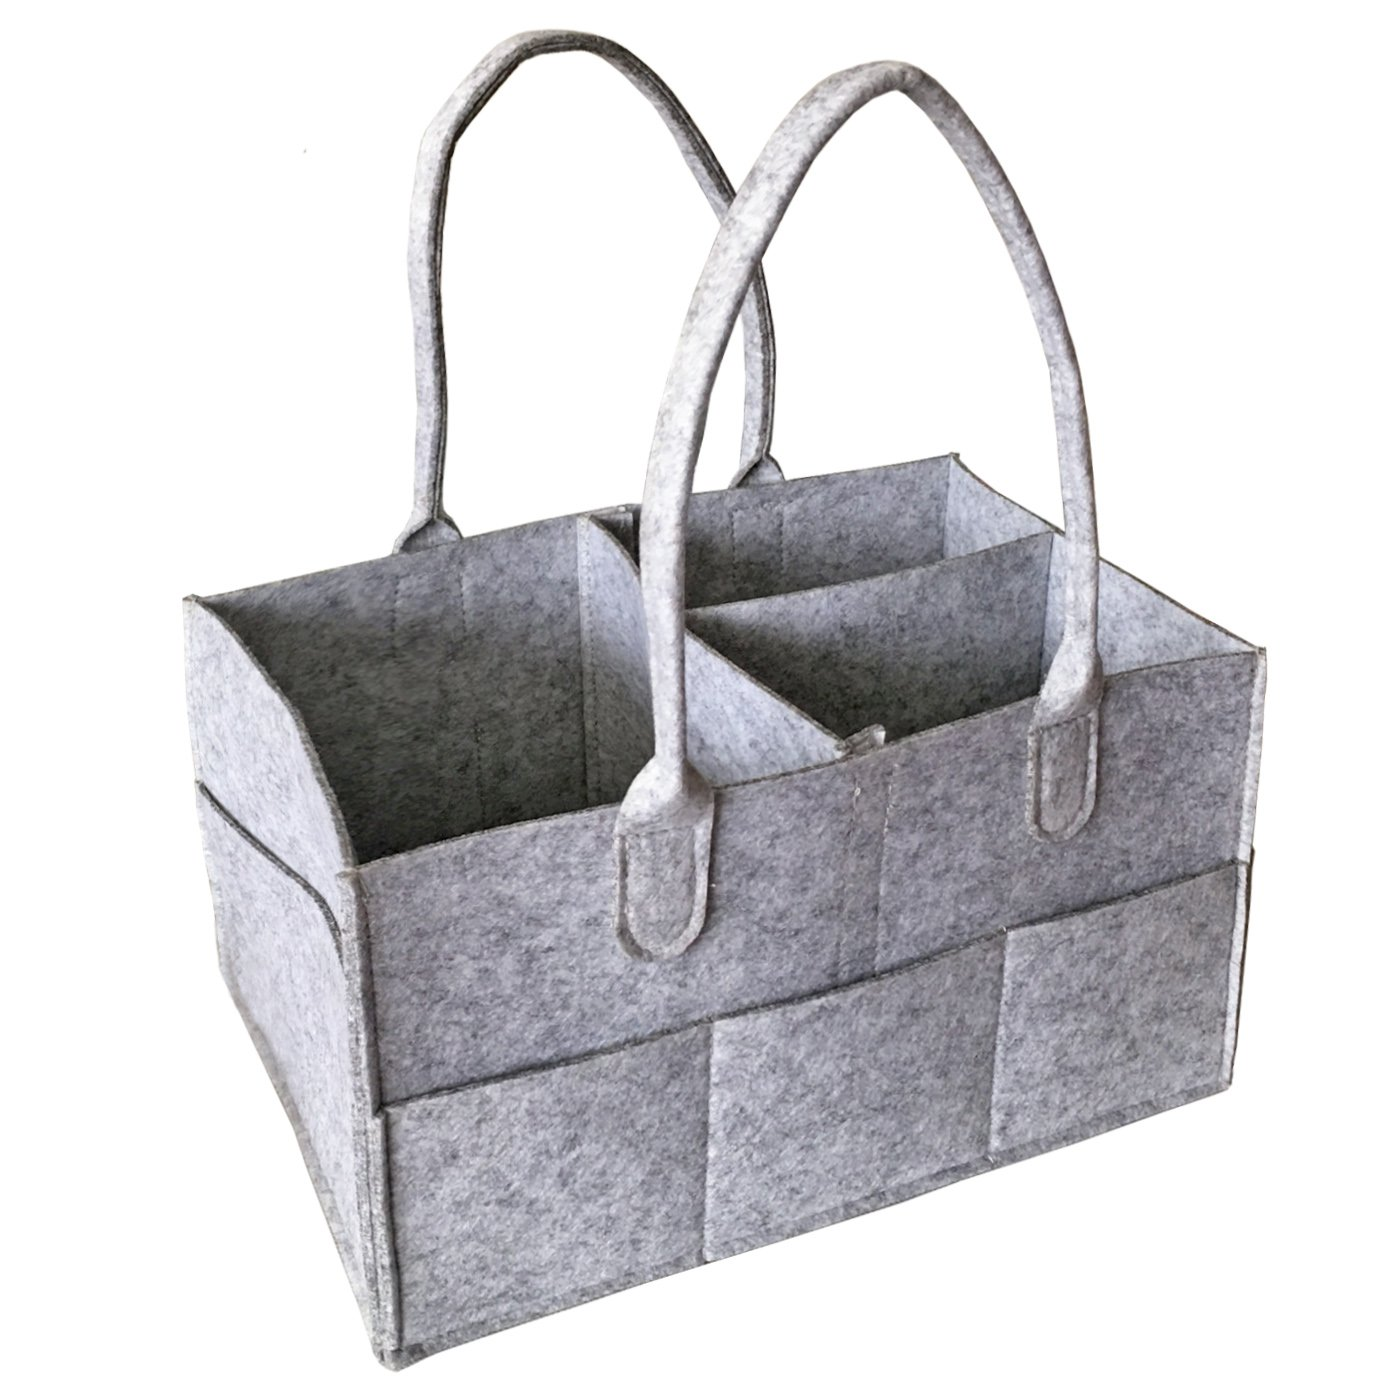 HyFanStr Felt Diaper Caddy Organiser Baby Wipes Bag Nursery Storage Bin Dark Grey